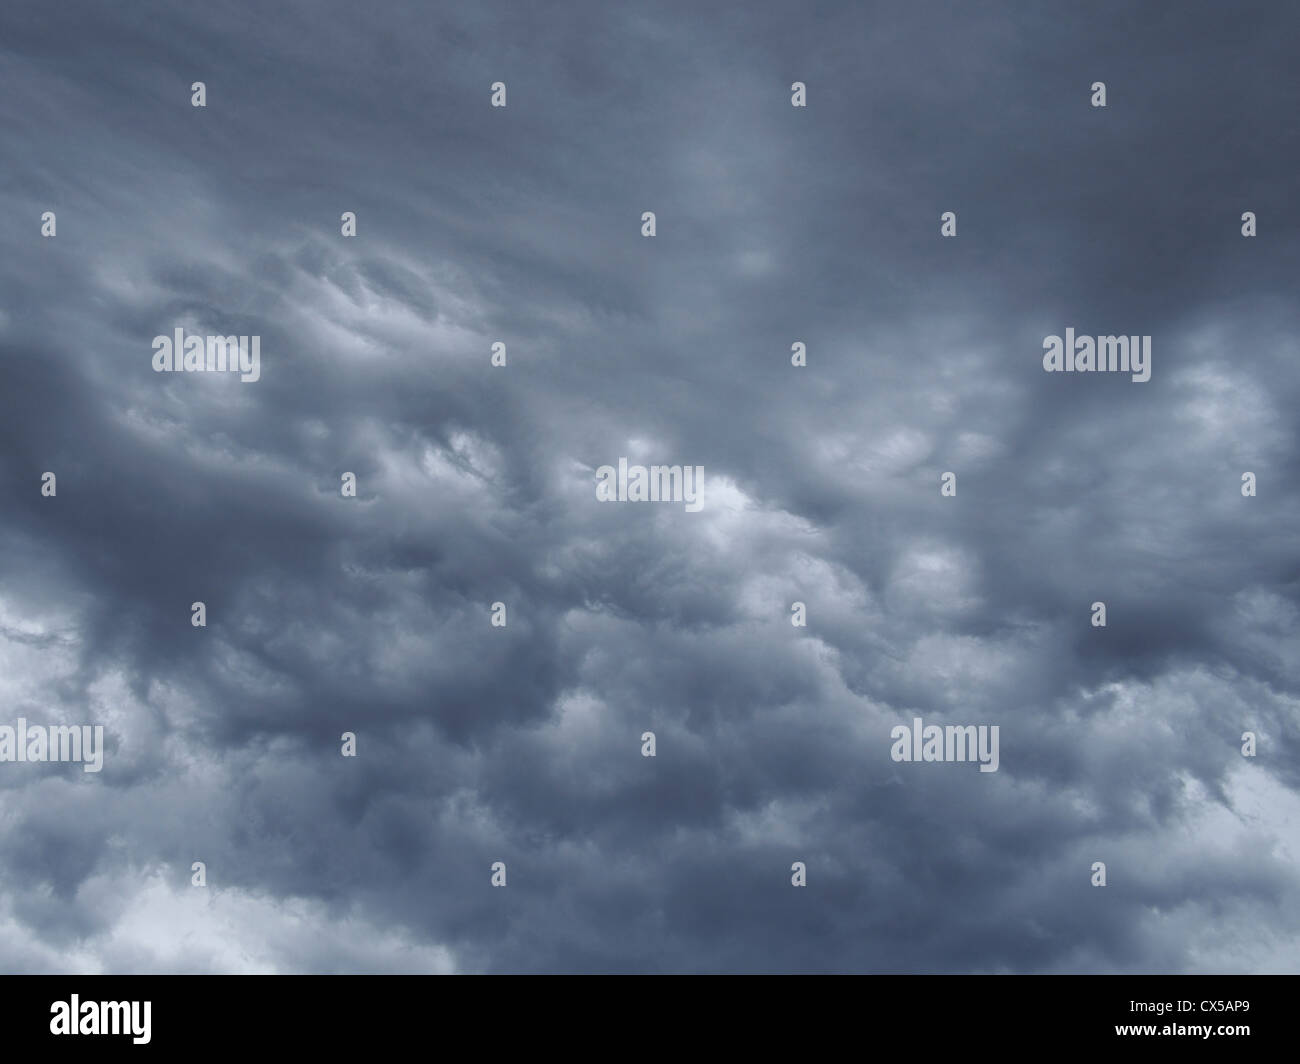 Instability in thundercloud, called mammatus. - Stock Image